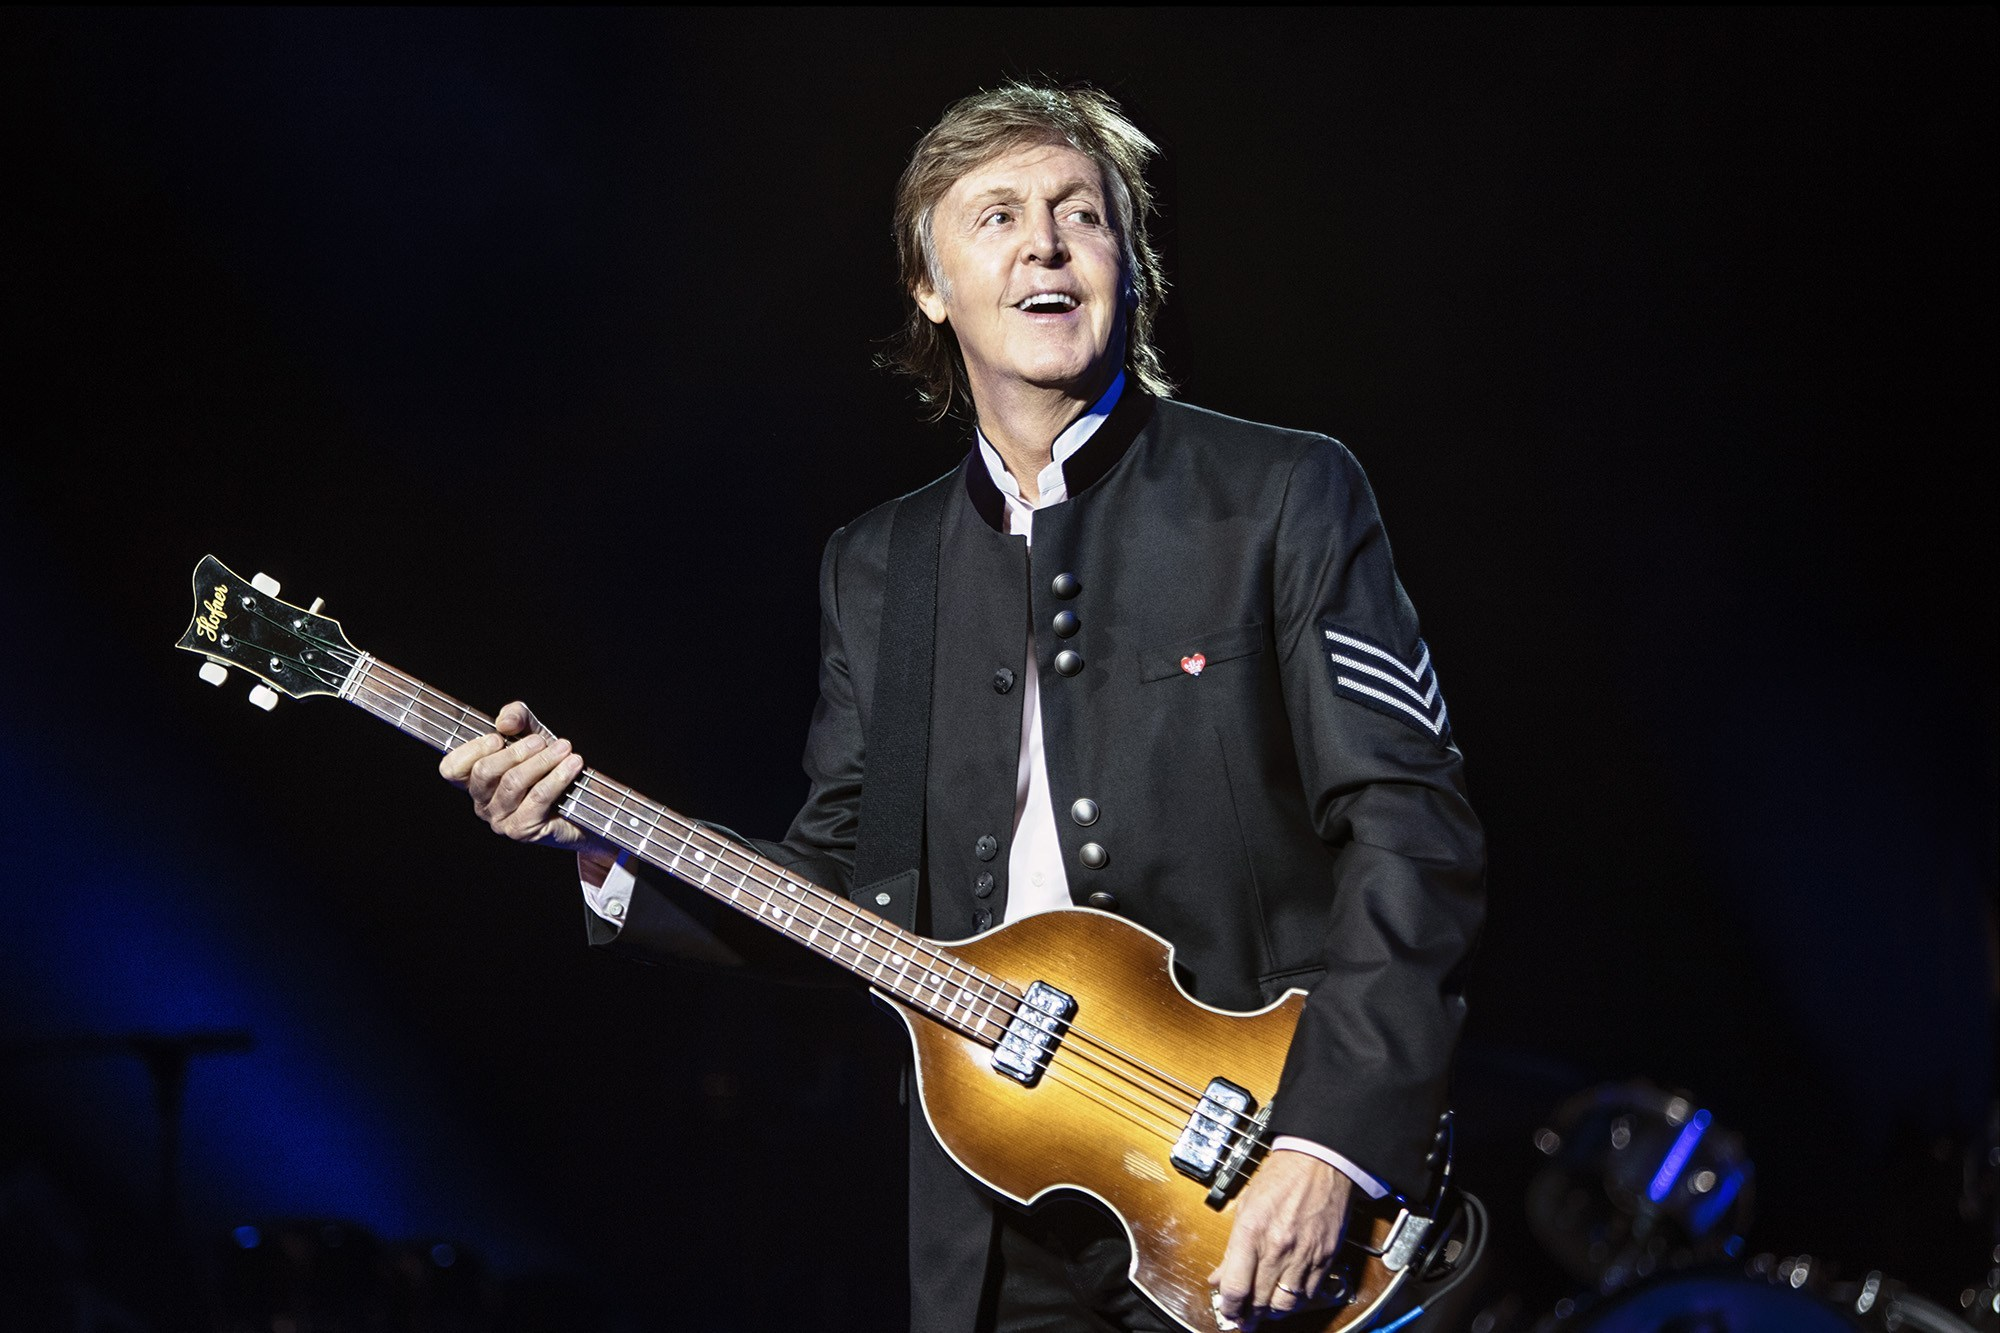 Paul McCartney supera los $ 100 millones en boletos vendidos con última gira